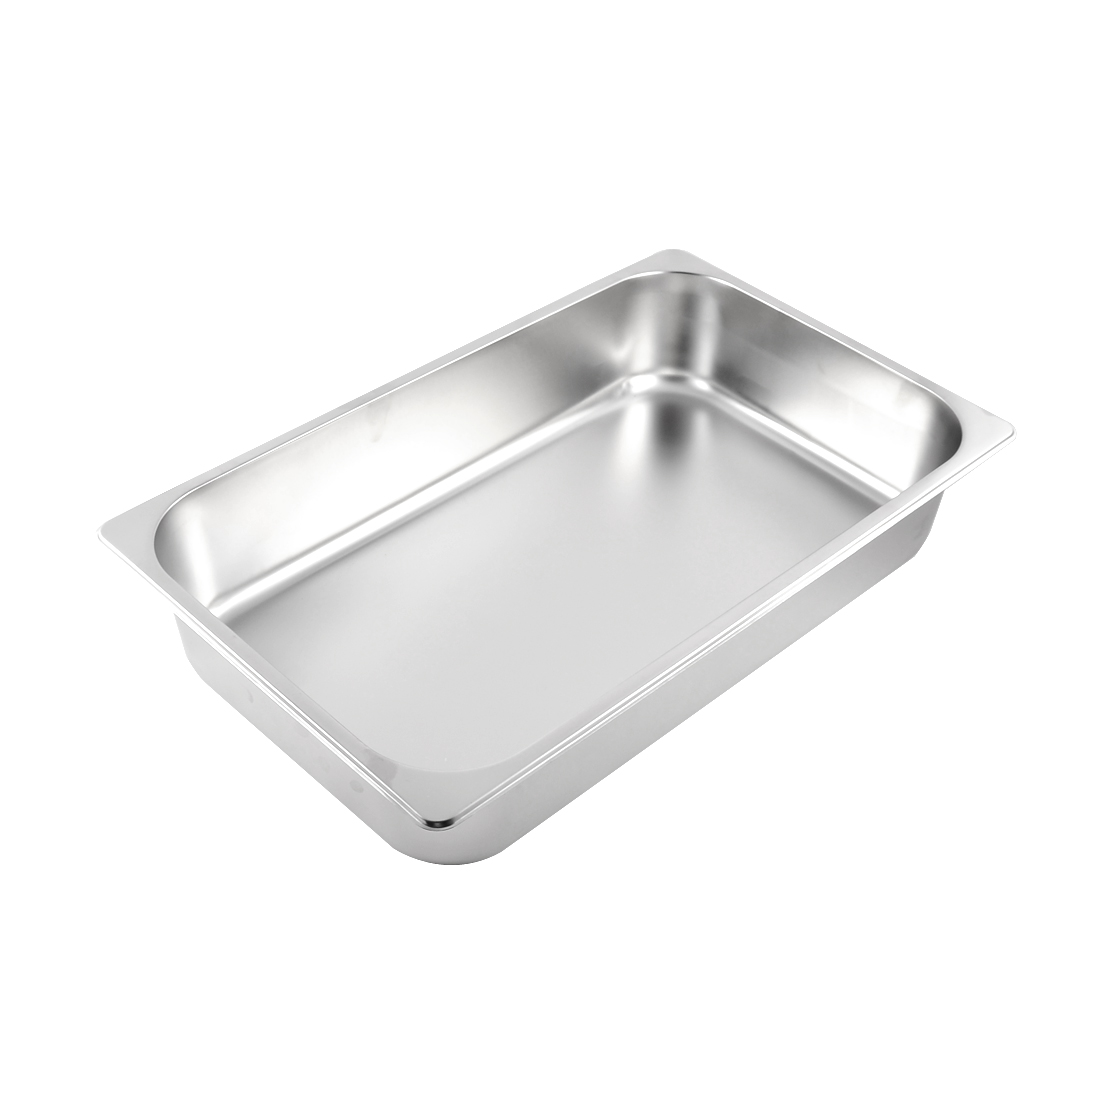 Home Kitchen Catering Metal Food Container 1/1 Gastronorm Pan 4 Inch Height